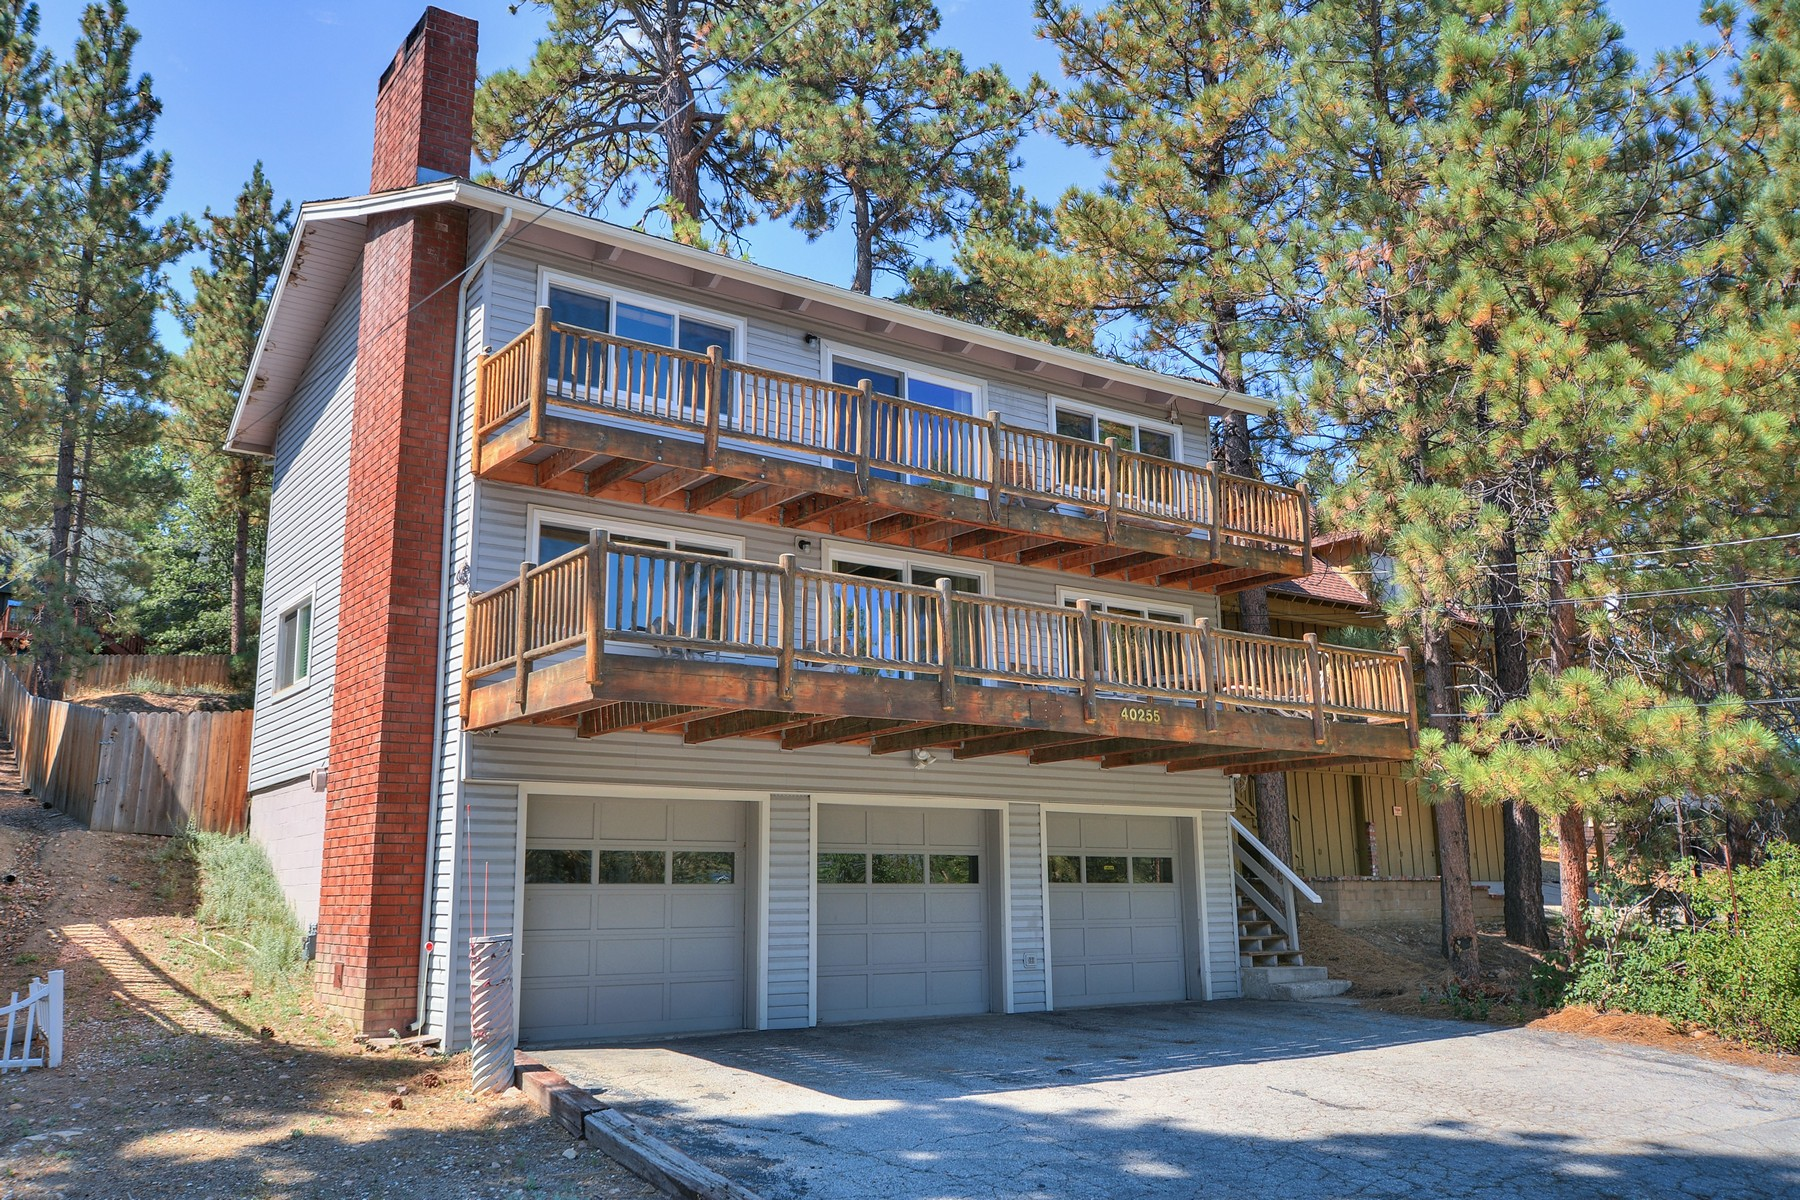 Single Family Home for Sale at 40255 Lakeview Drive, Big Bear Lake, California, 92315 Big Bear Lake, California 92315 United States